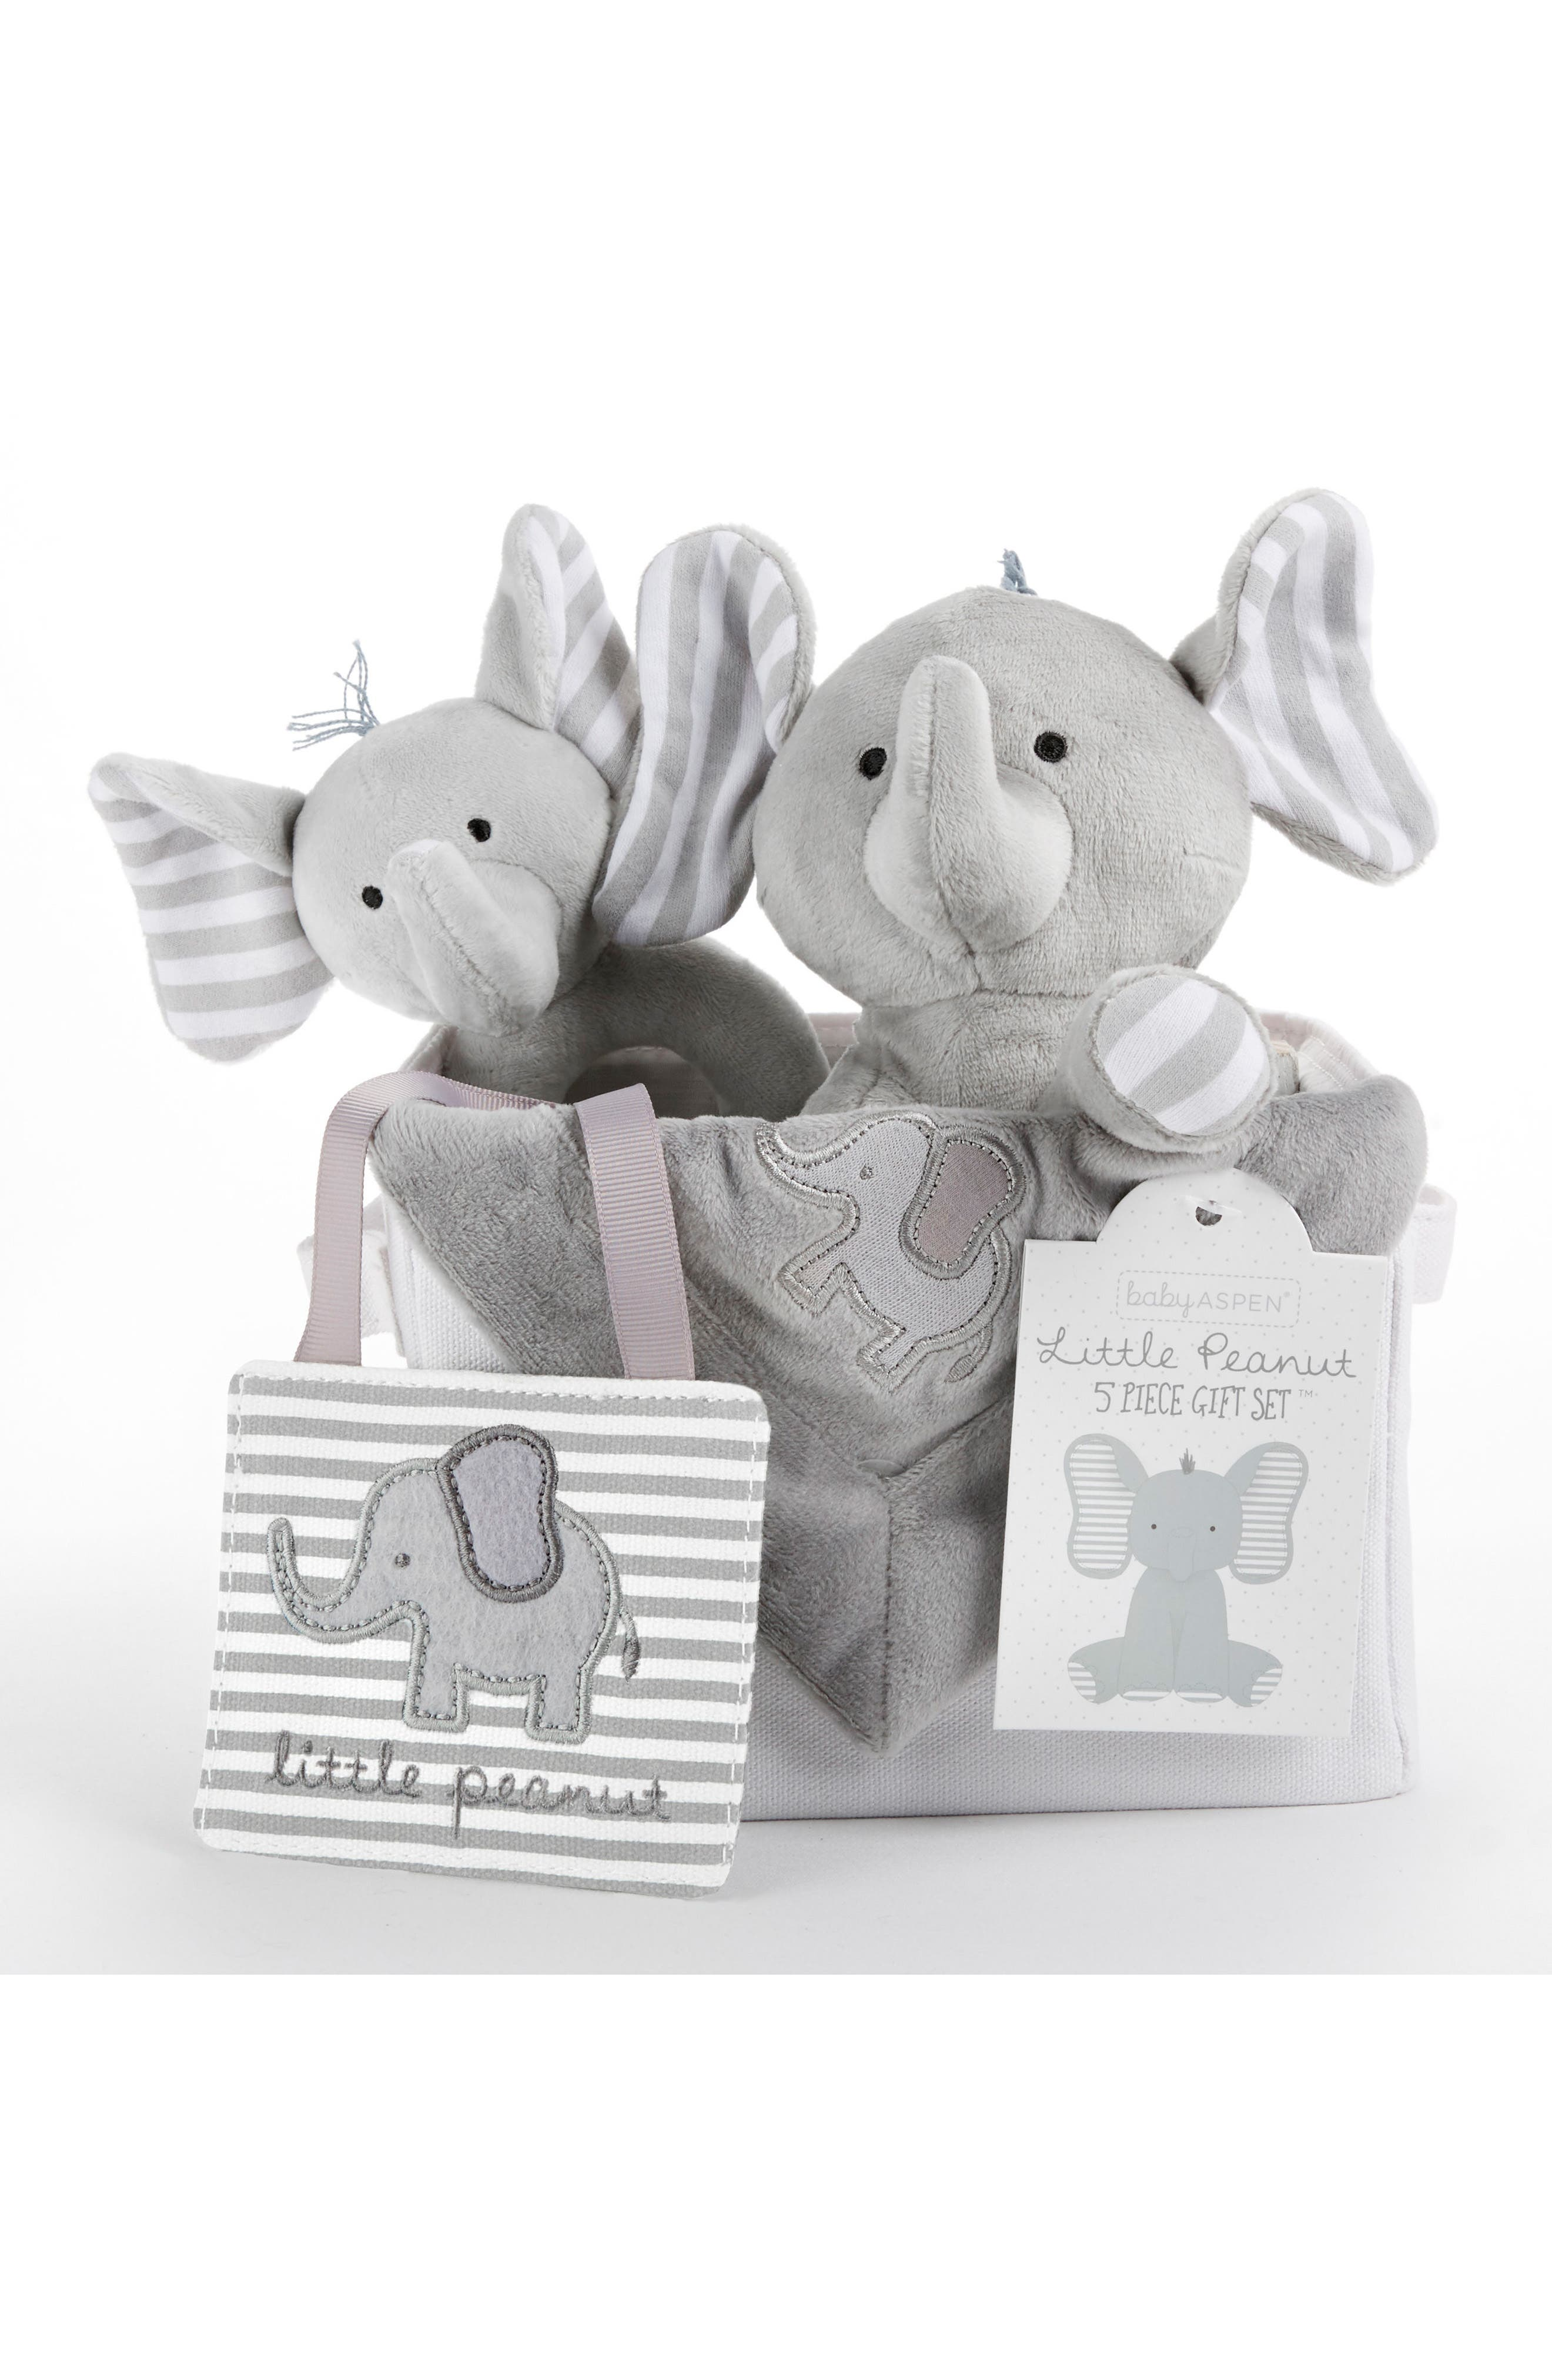 Little Peanut Elephant 5-Piece Gift Set,                         Main,                         color, GREY AND WHITE